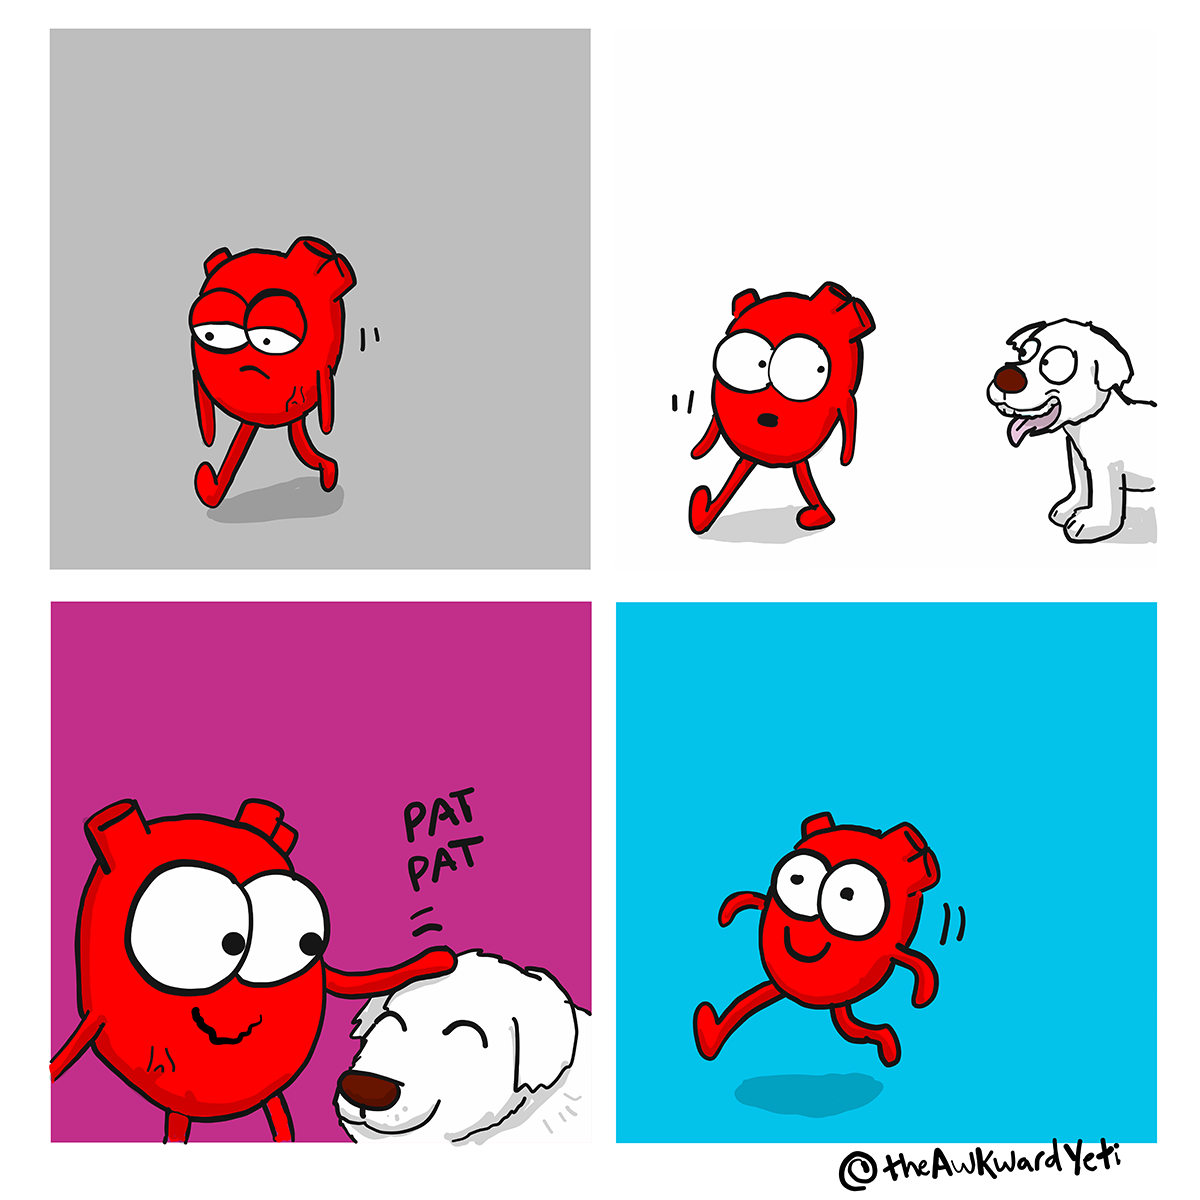 The Awkward Yeti | Heart Plus Dog